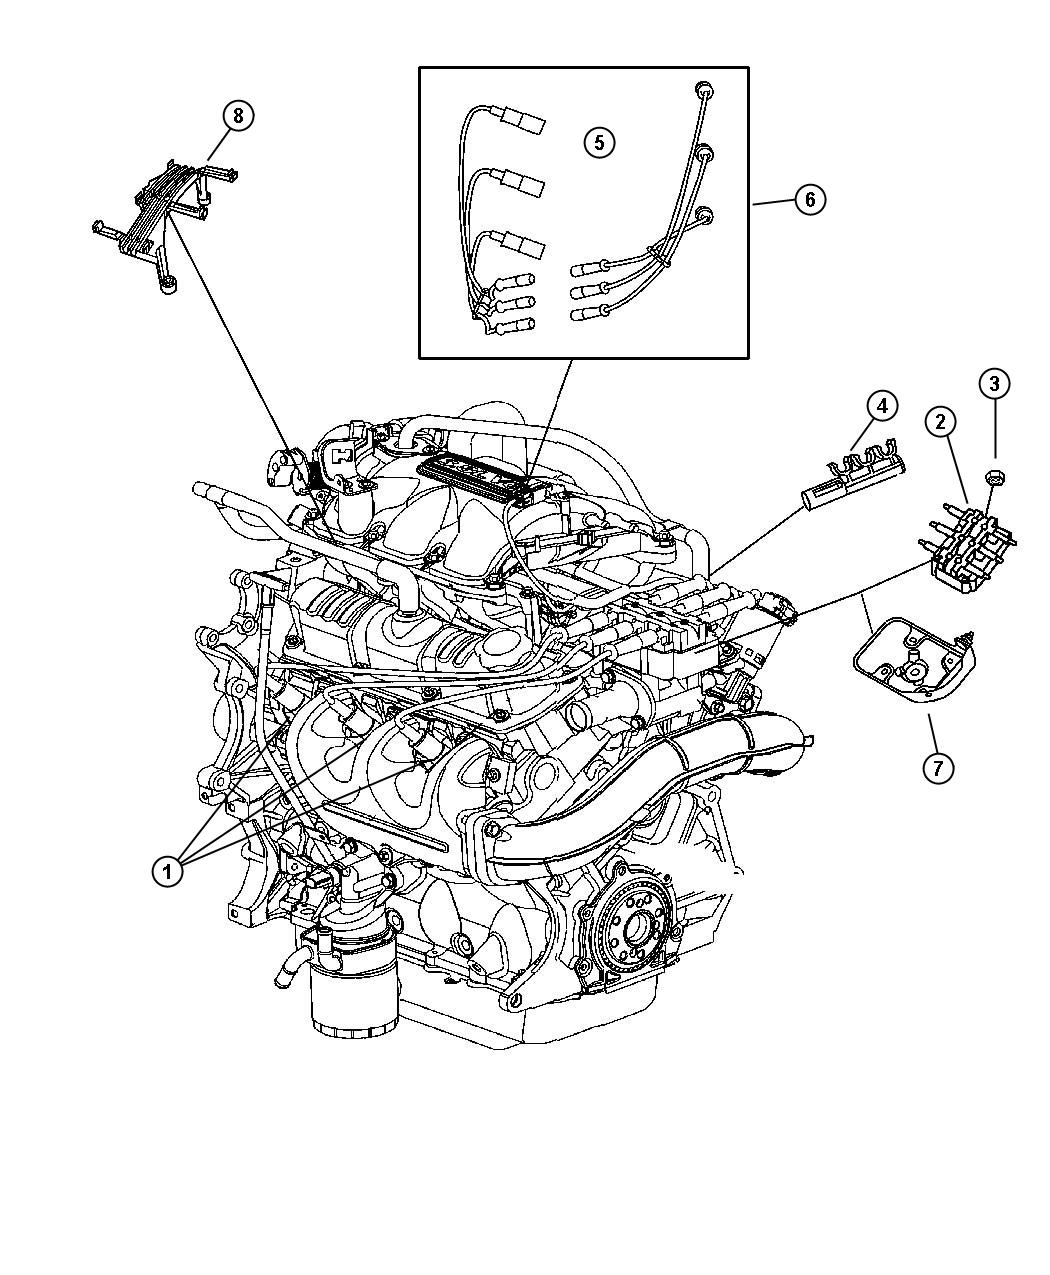 2004 Chrysler Pacifica Engine Diagram Best Wiring Library 1999 Ford F 150 Power Window Spark Plugs 3 5